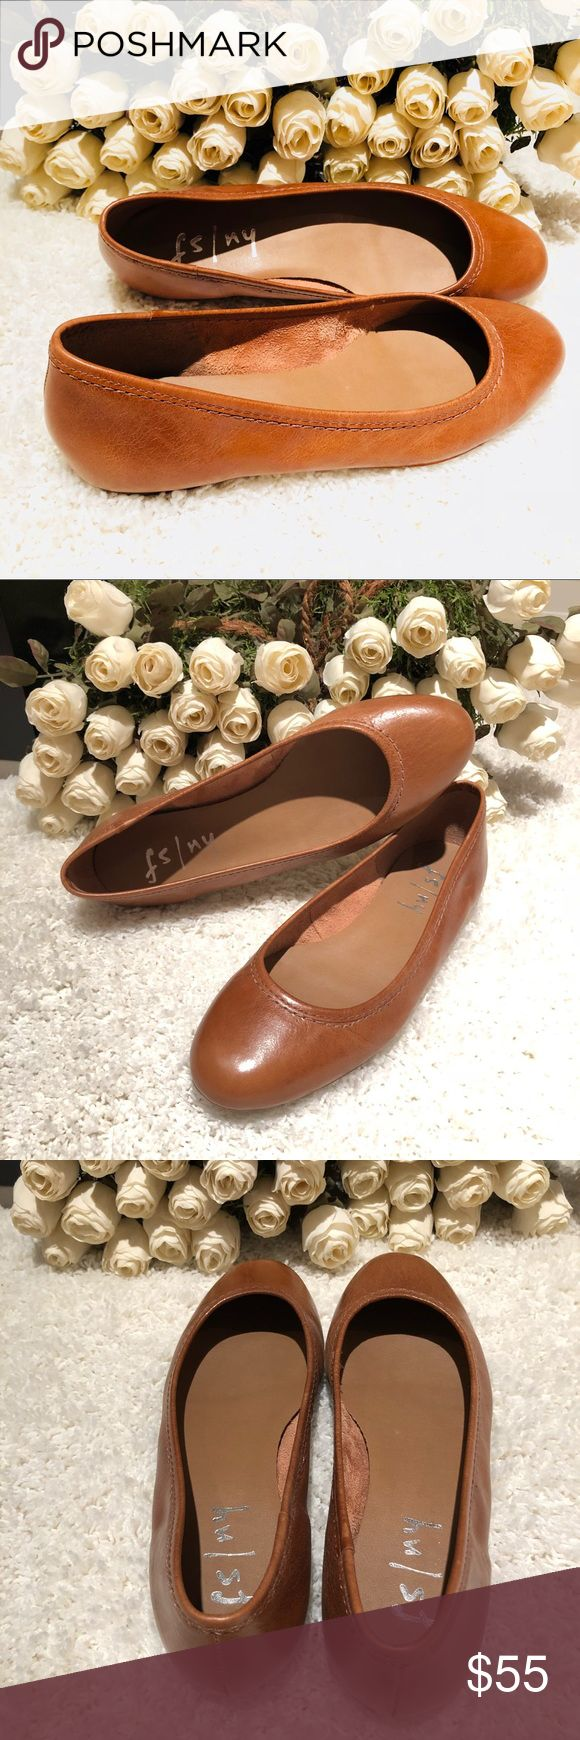 FS/NY French Sole Tan Leather Ballet Flat NWOB Tan Leather Ballet Flats — Brand: French Sole New York (FSNY) — Size: 7.5 — Color: Camel/ Tan — Material: Cuoio Leather — New Without Box FS/NY Shoes Flats & Loafers